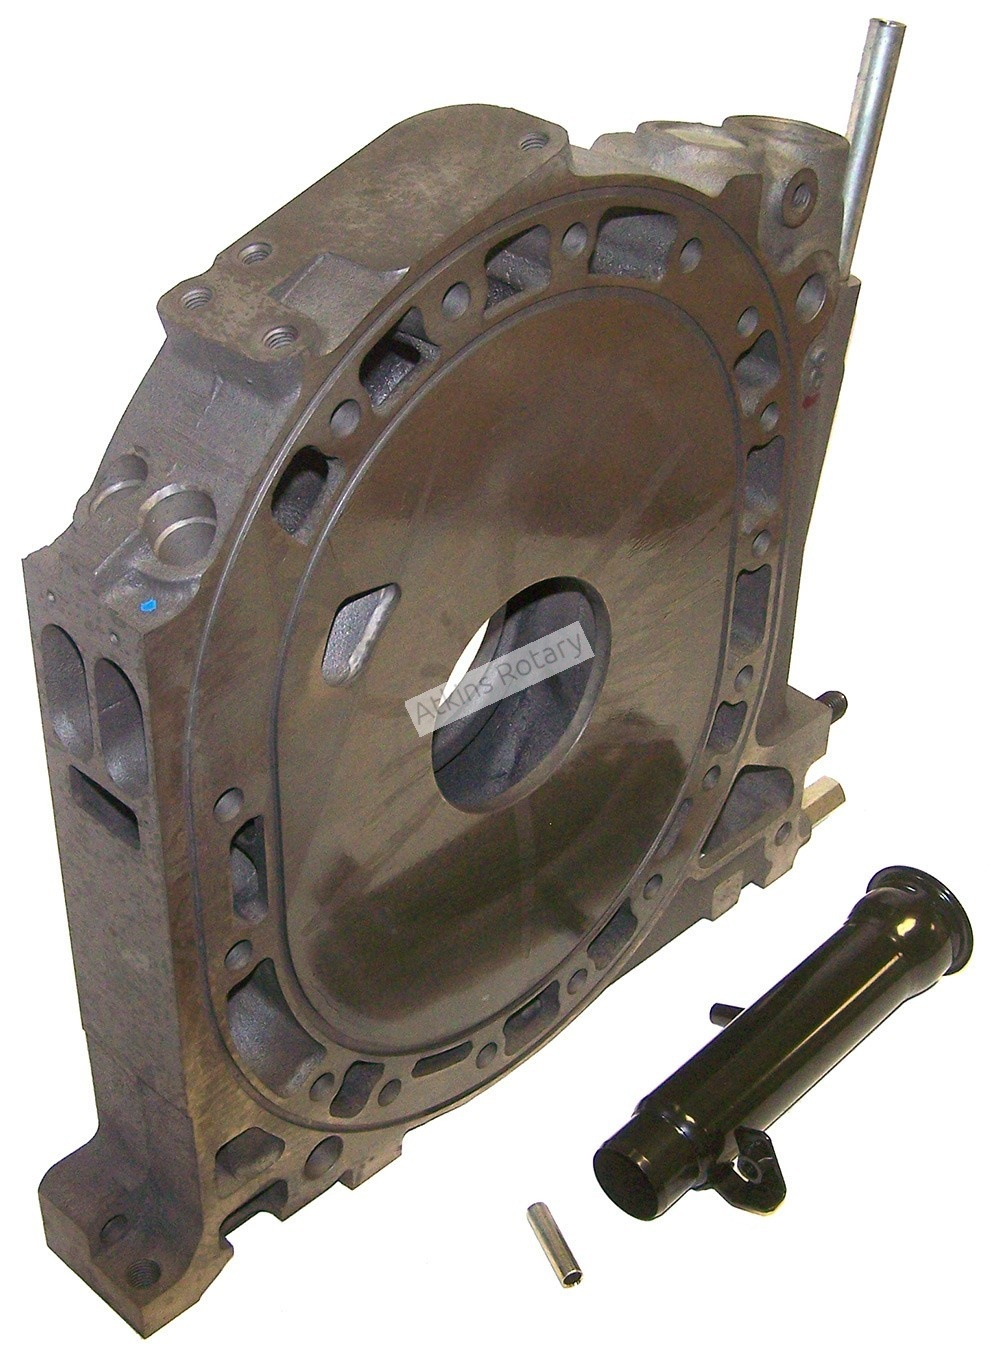 89-91 N/A Rx7 Center Side Housing (N350-10-D00C)